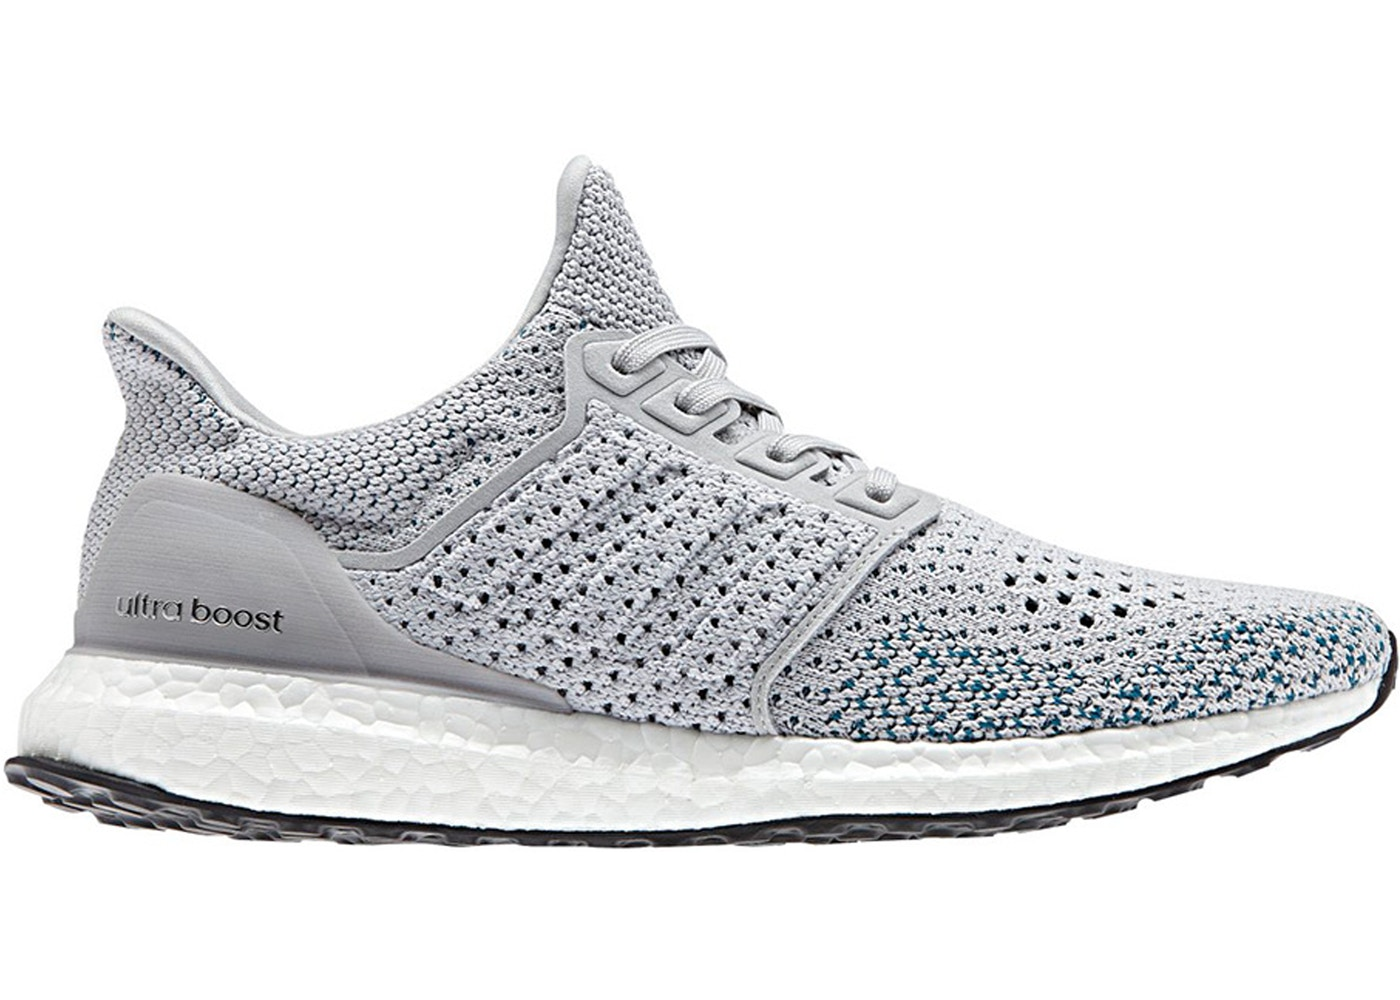 The adidas Ultra Boost 4.0 Parley in 'Deep Ocean Blue' Arrives Next